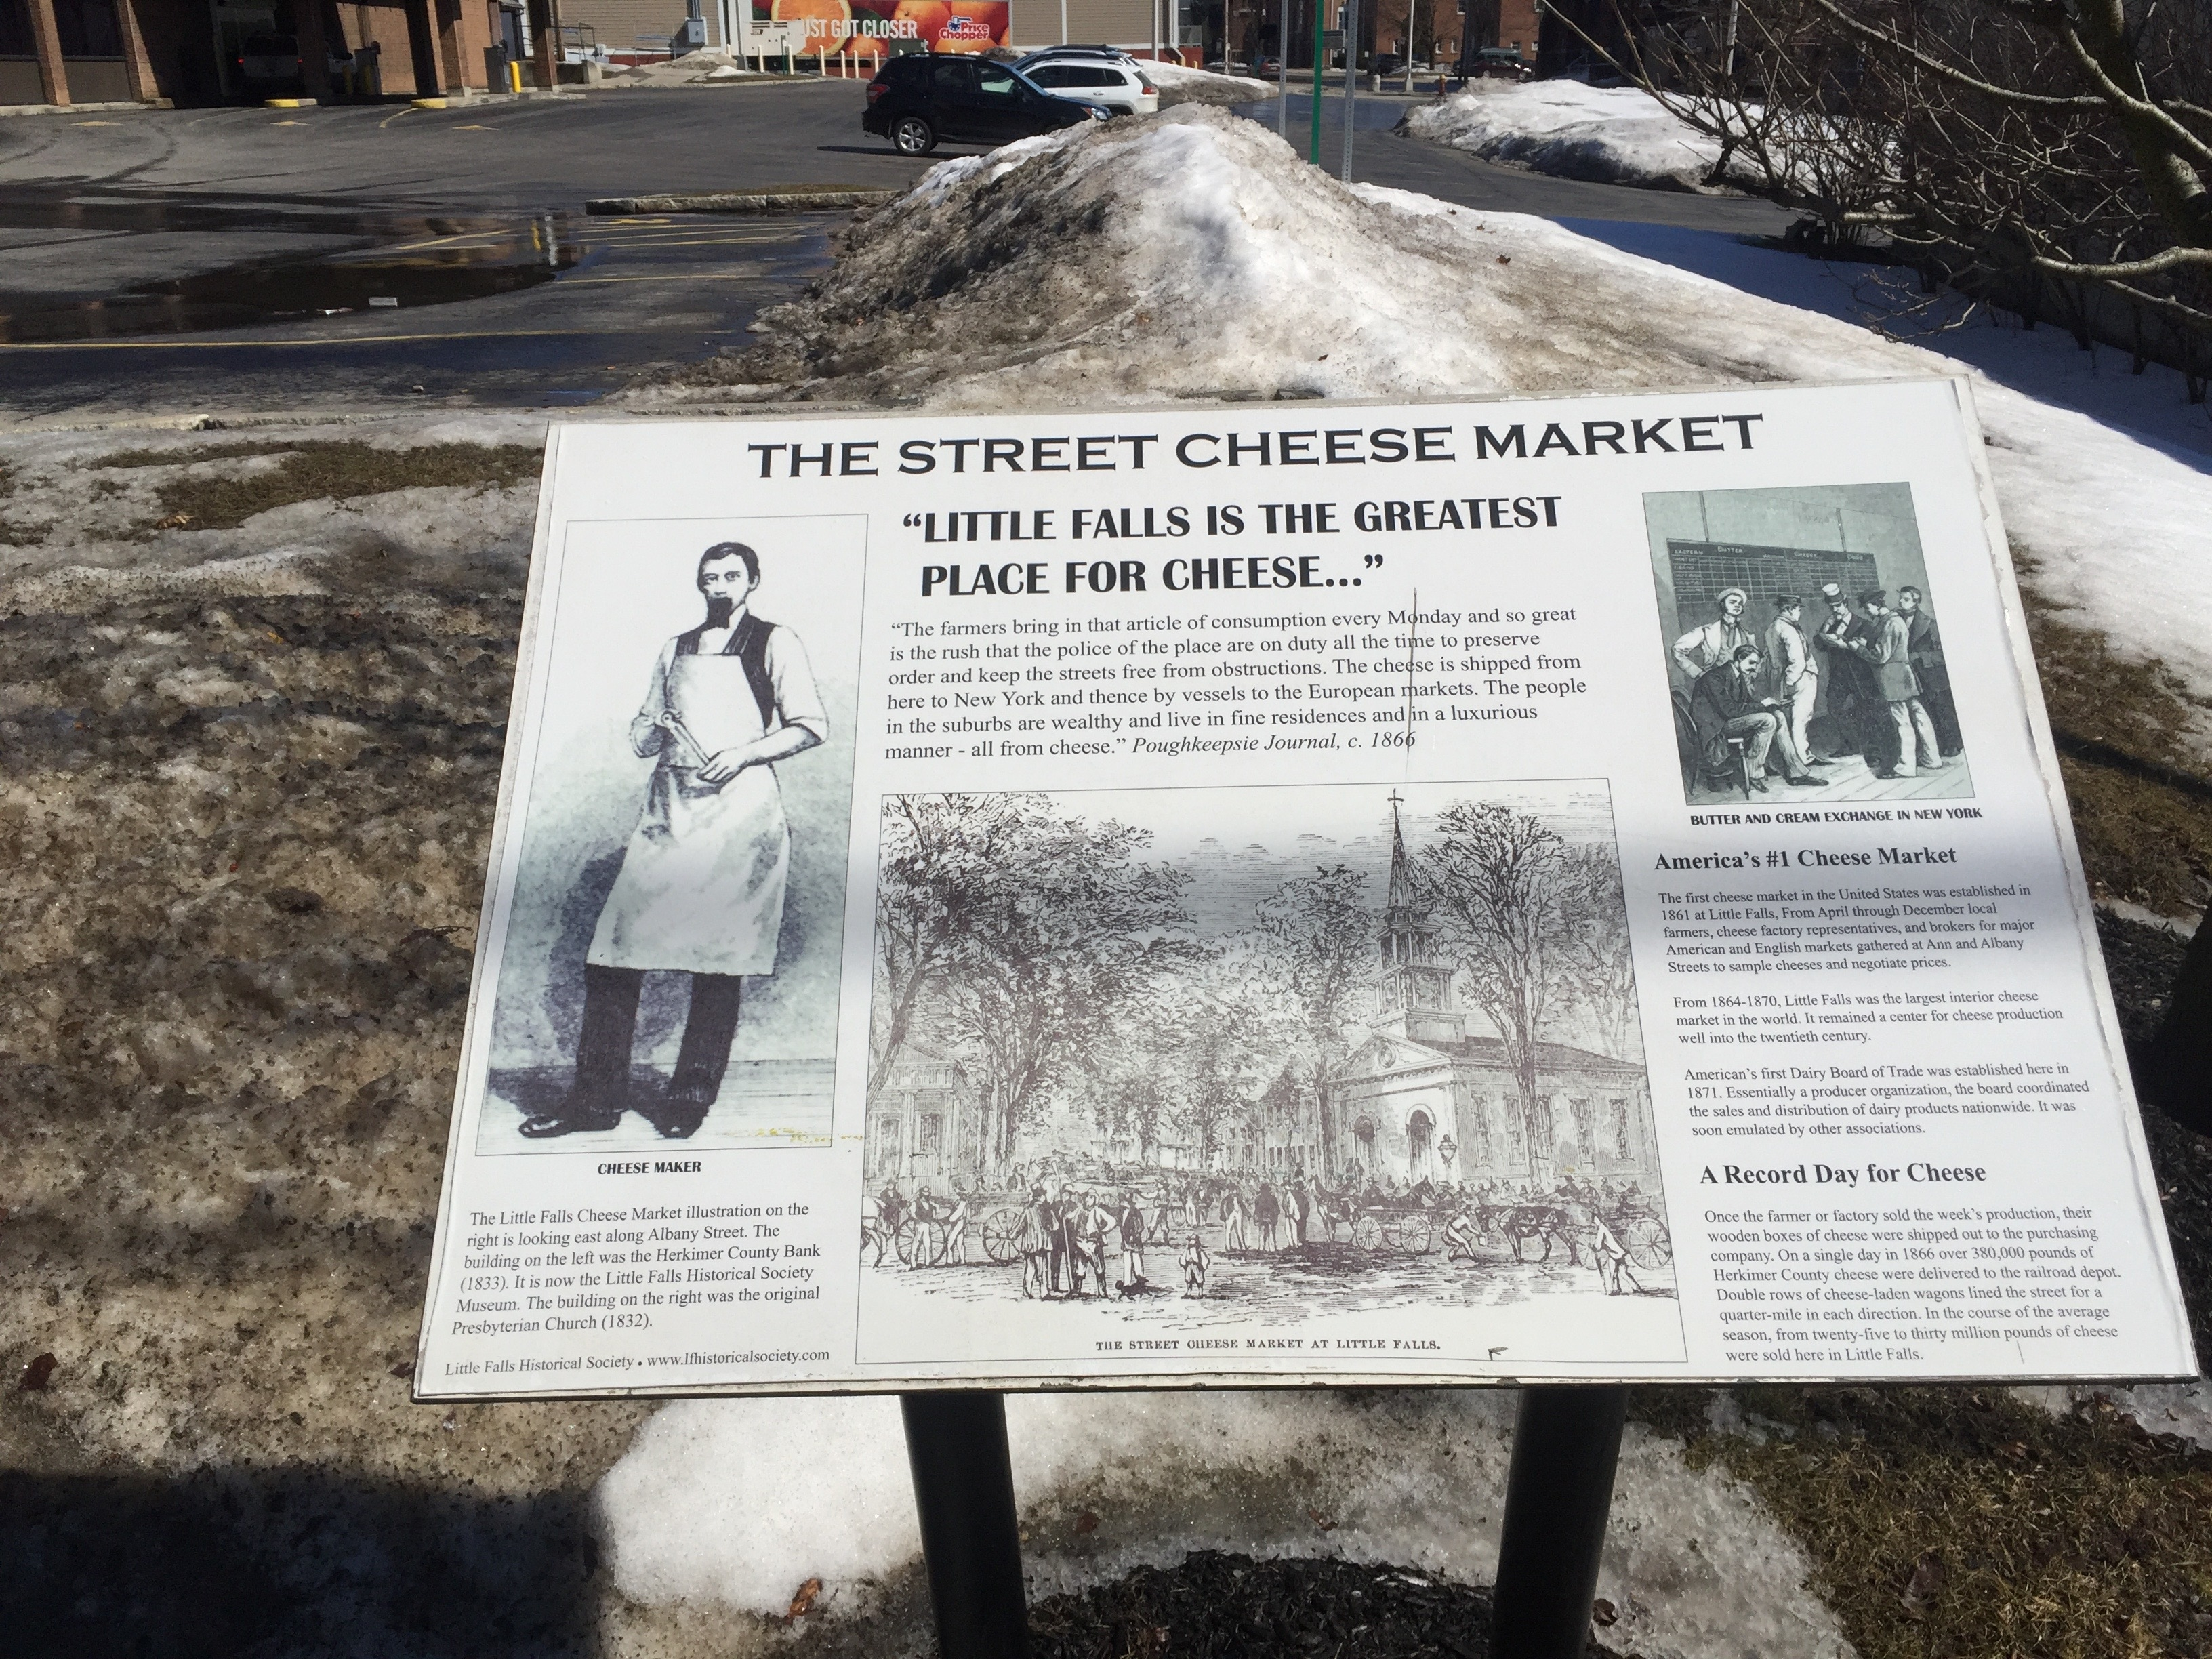 The Street Cheese Market Marker